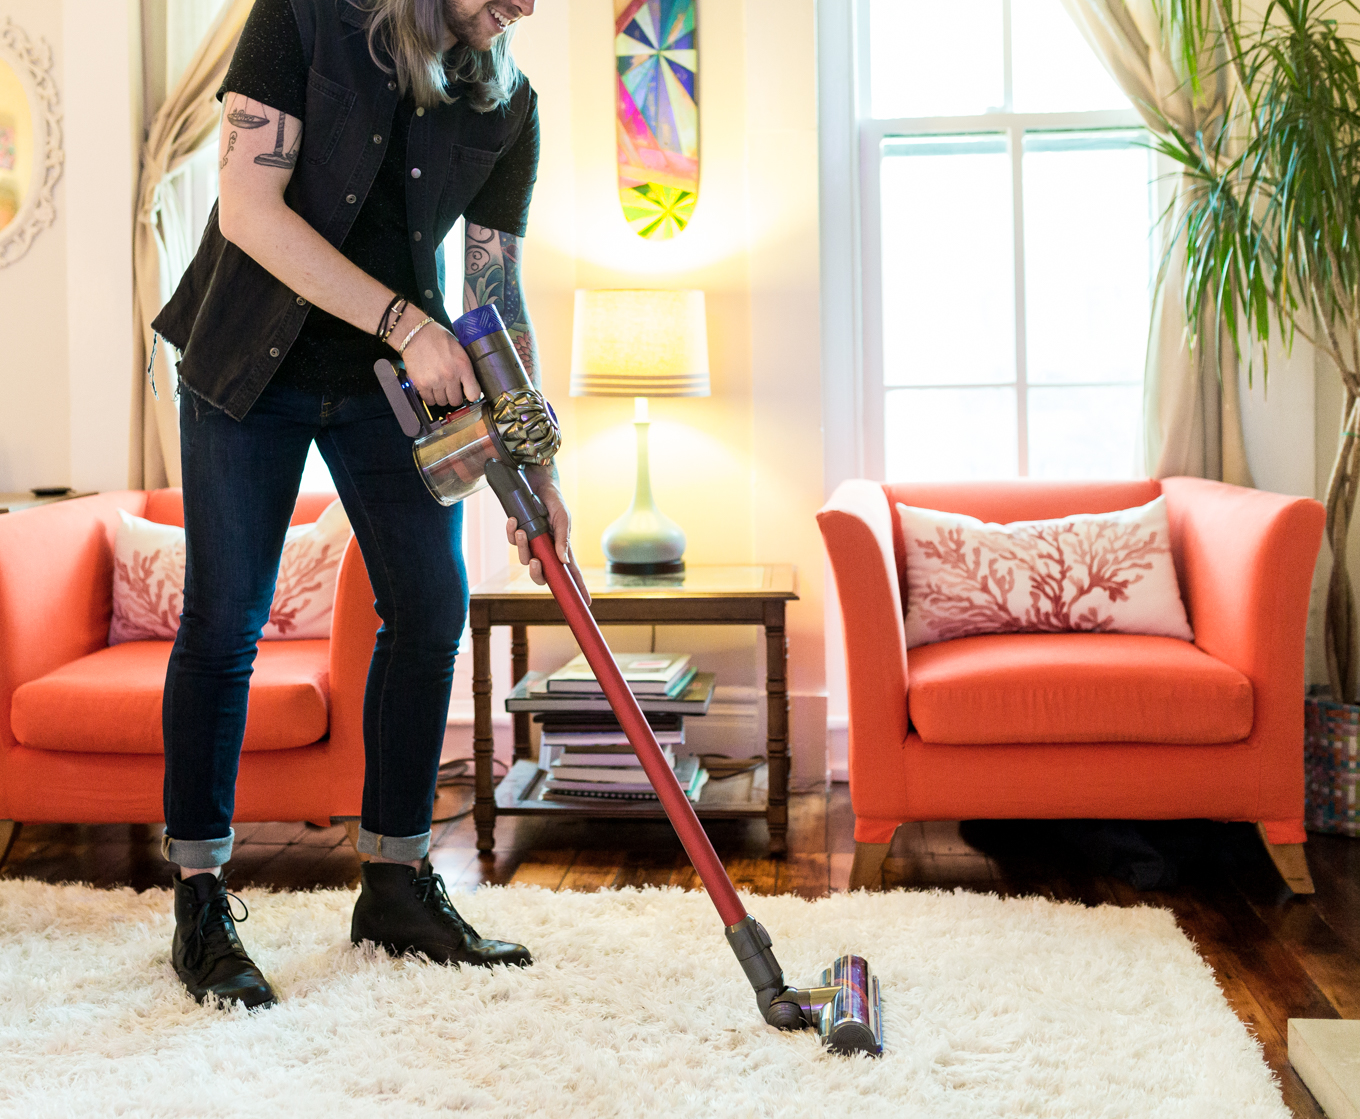 dyson cordless vacuums, how to clean your apartment, tips for apartment cleaning, dyson vacuums, mens lifestyle blog